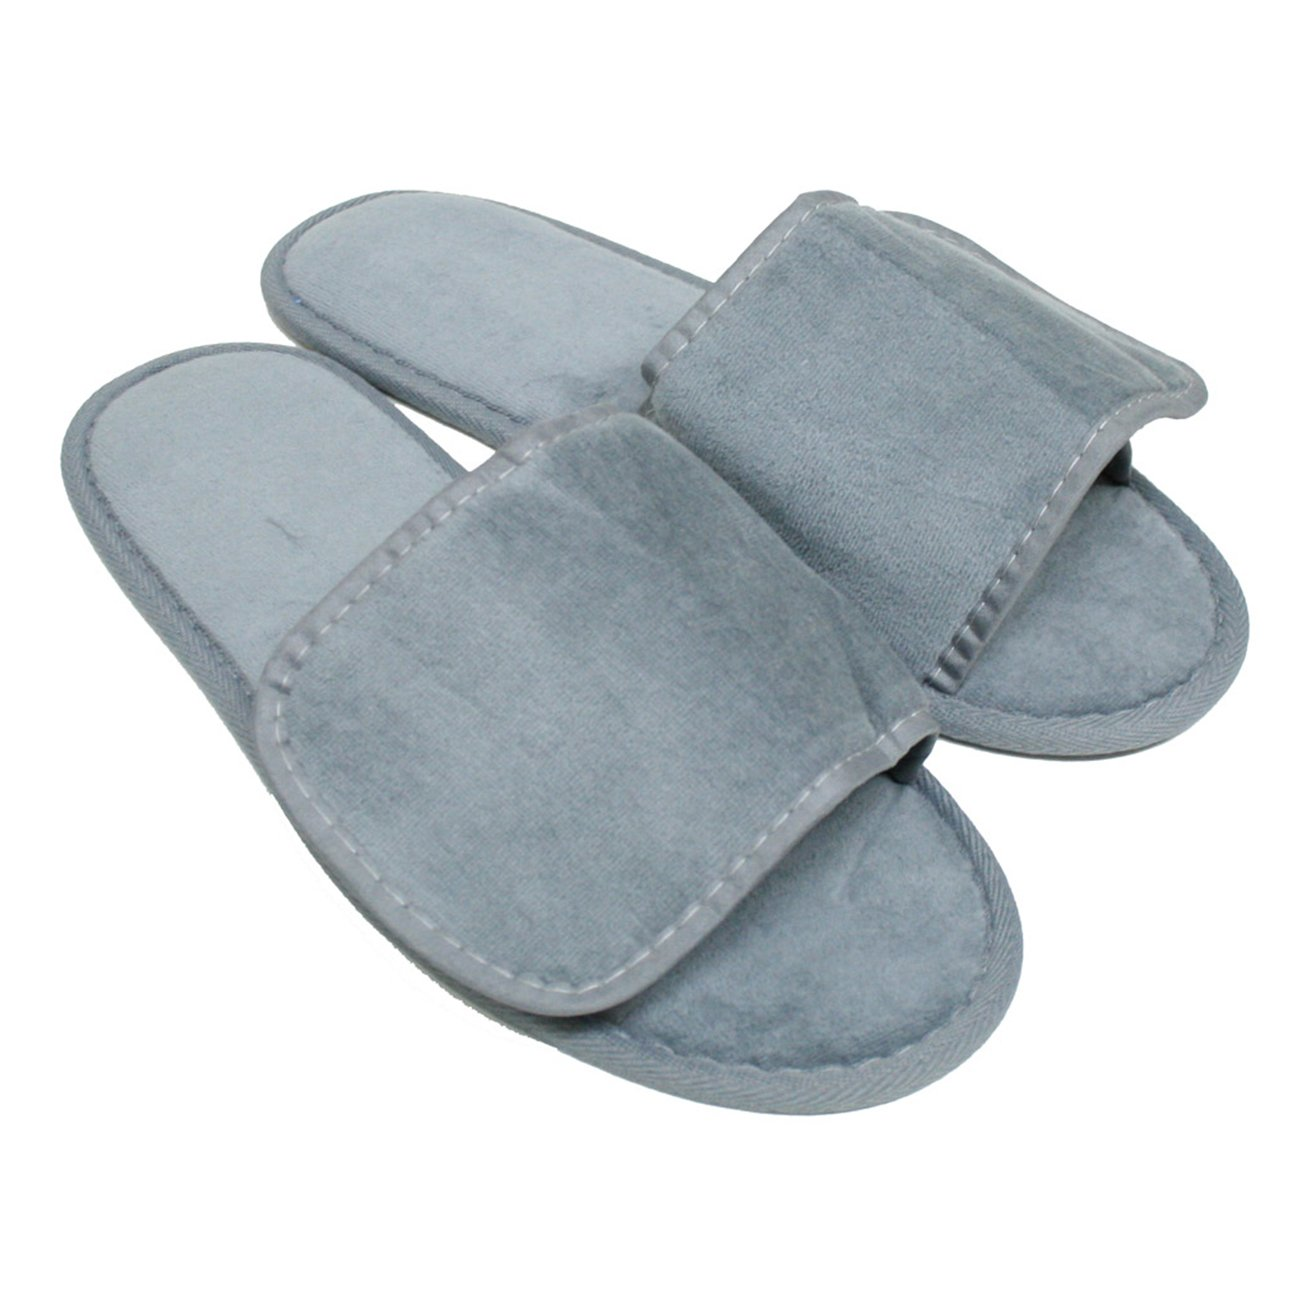 Terry Nylon Fabric Closure Open Toe Unisex Slippers Wholesale 100 Pcs (One Size 11'', Cool Grey) by TowelRobes (Image #1)